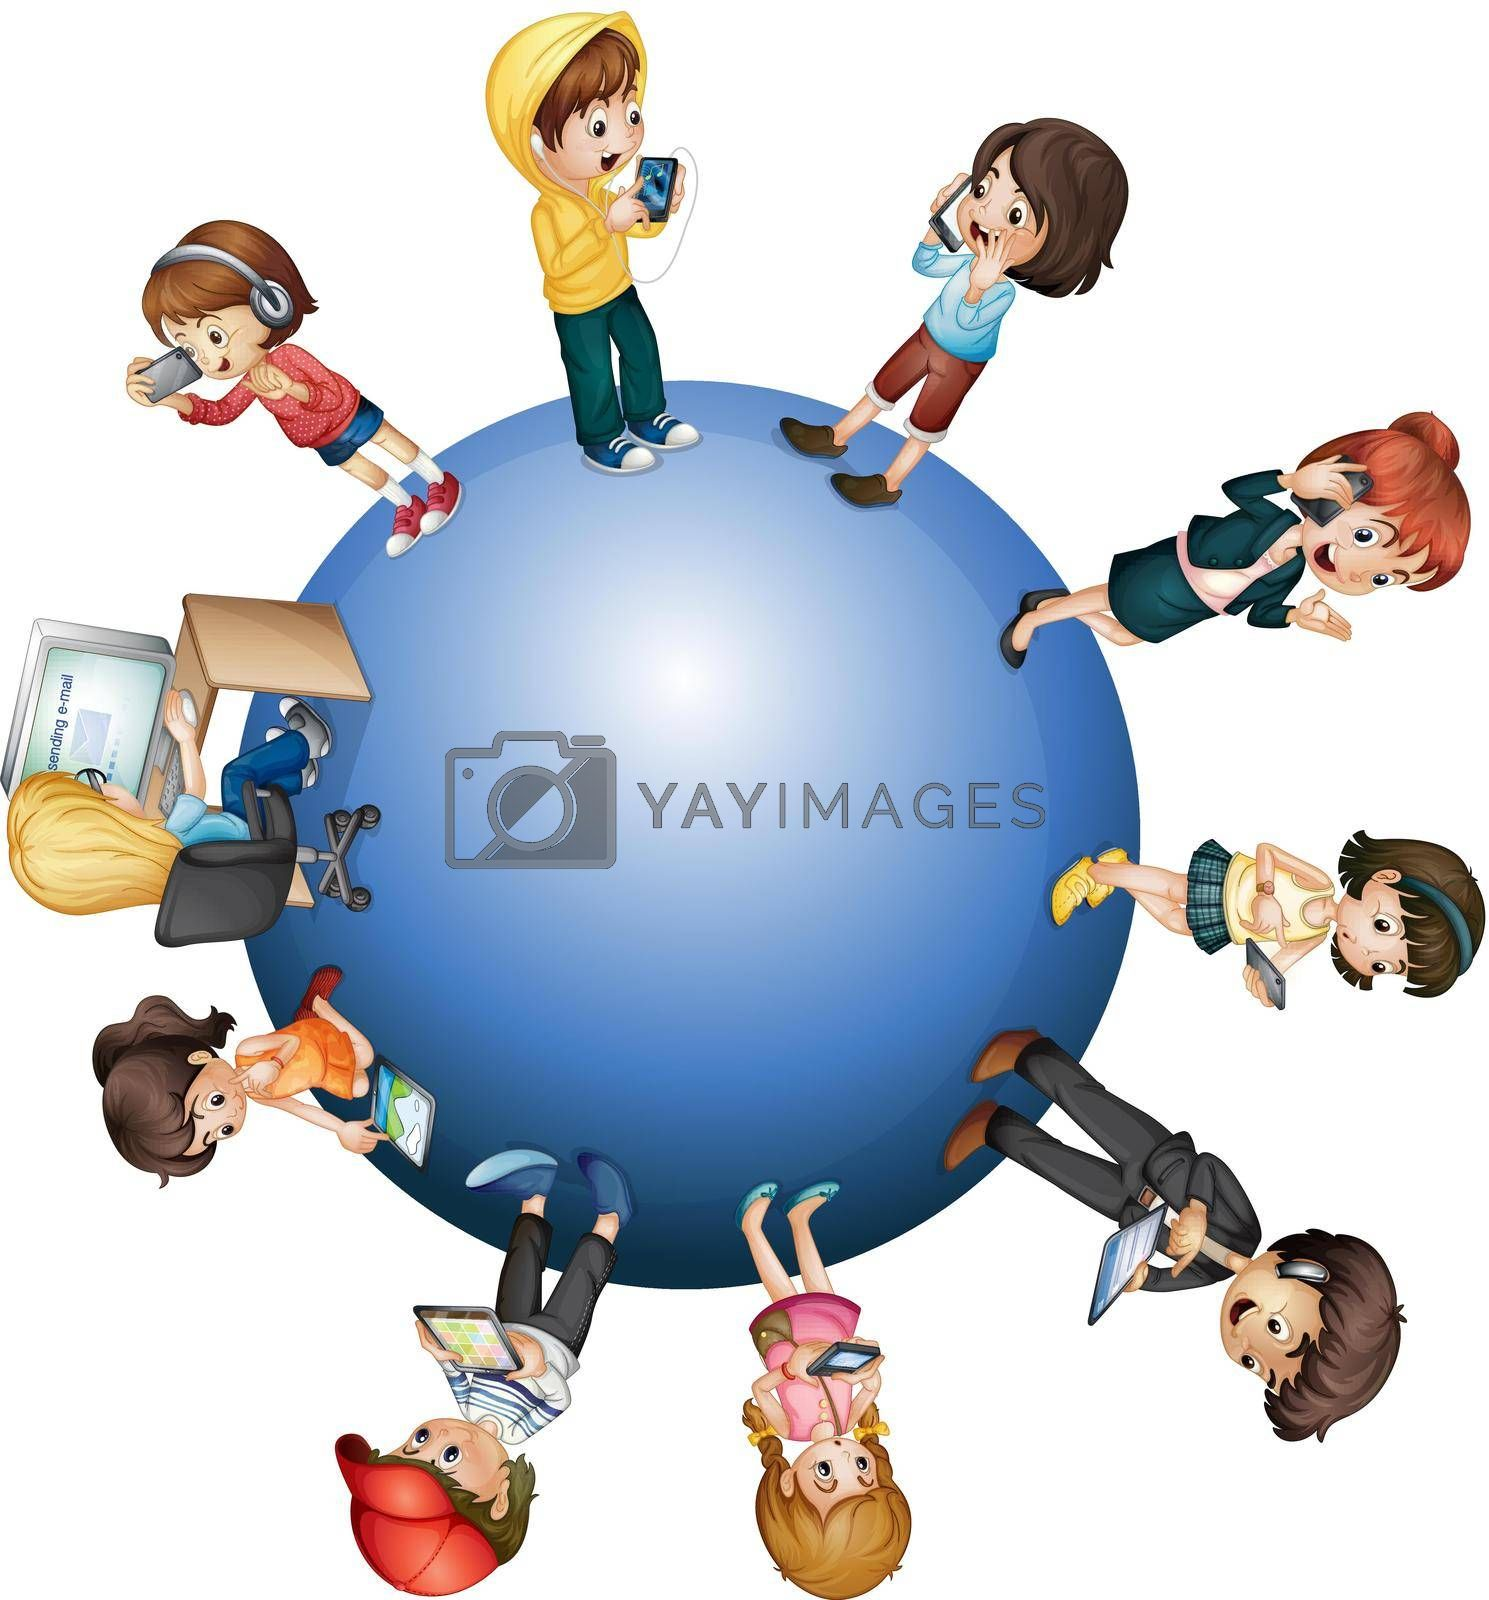 Royalty free image of Global technology by iimages